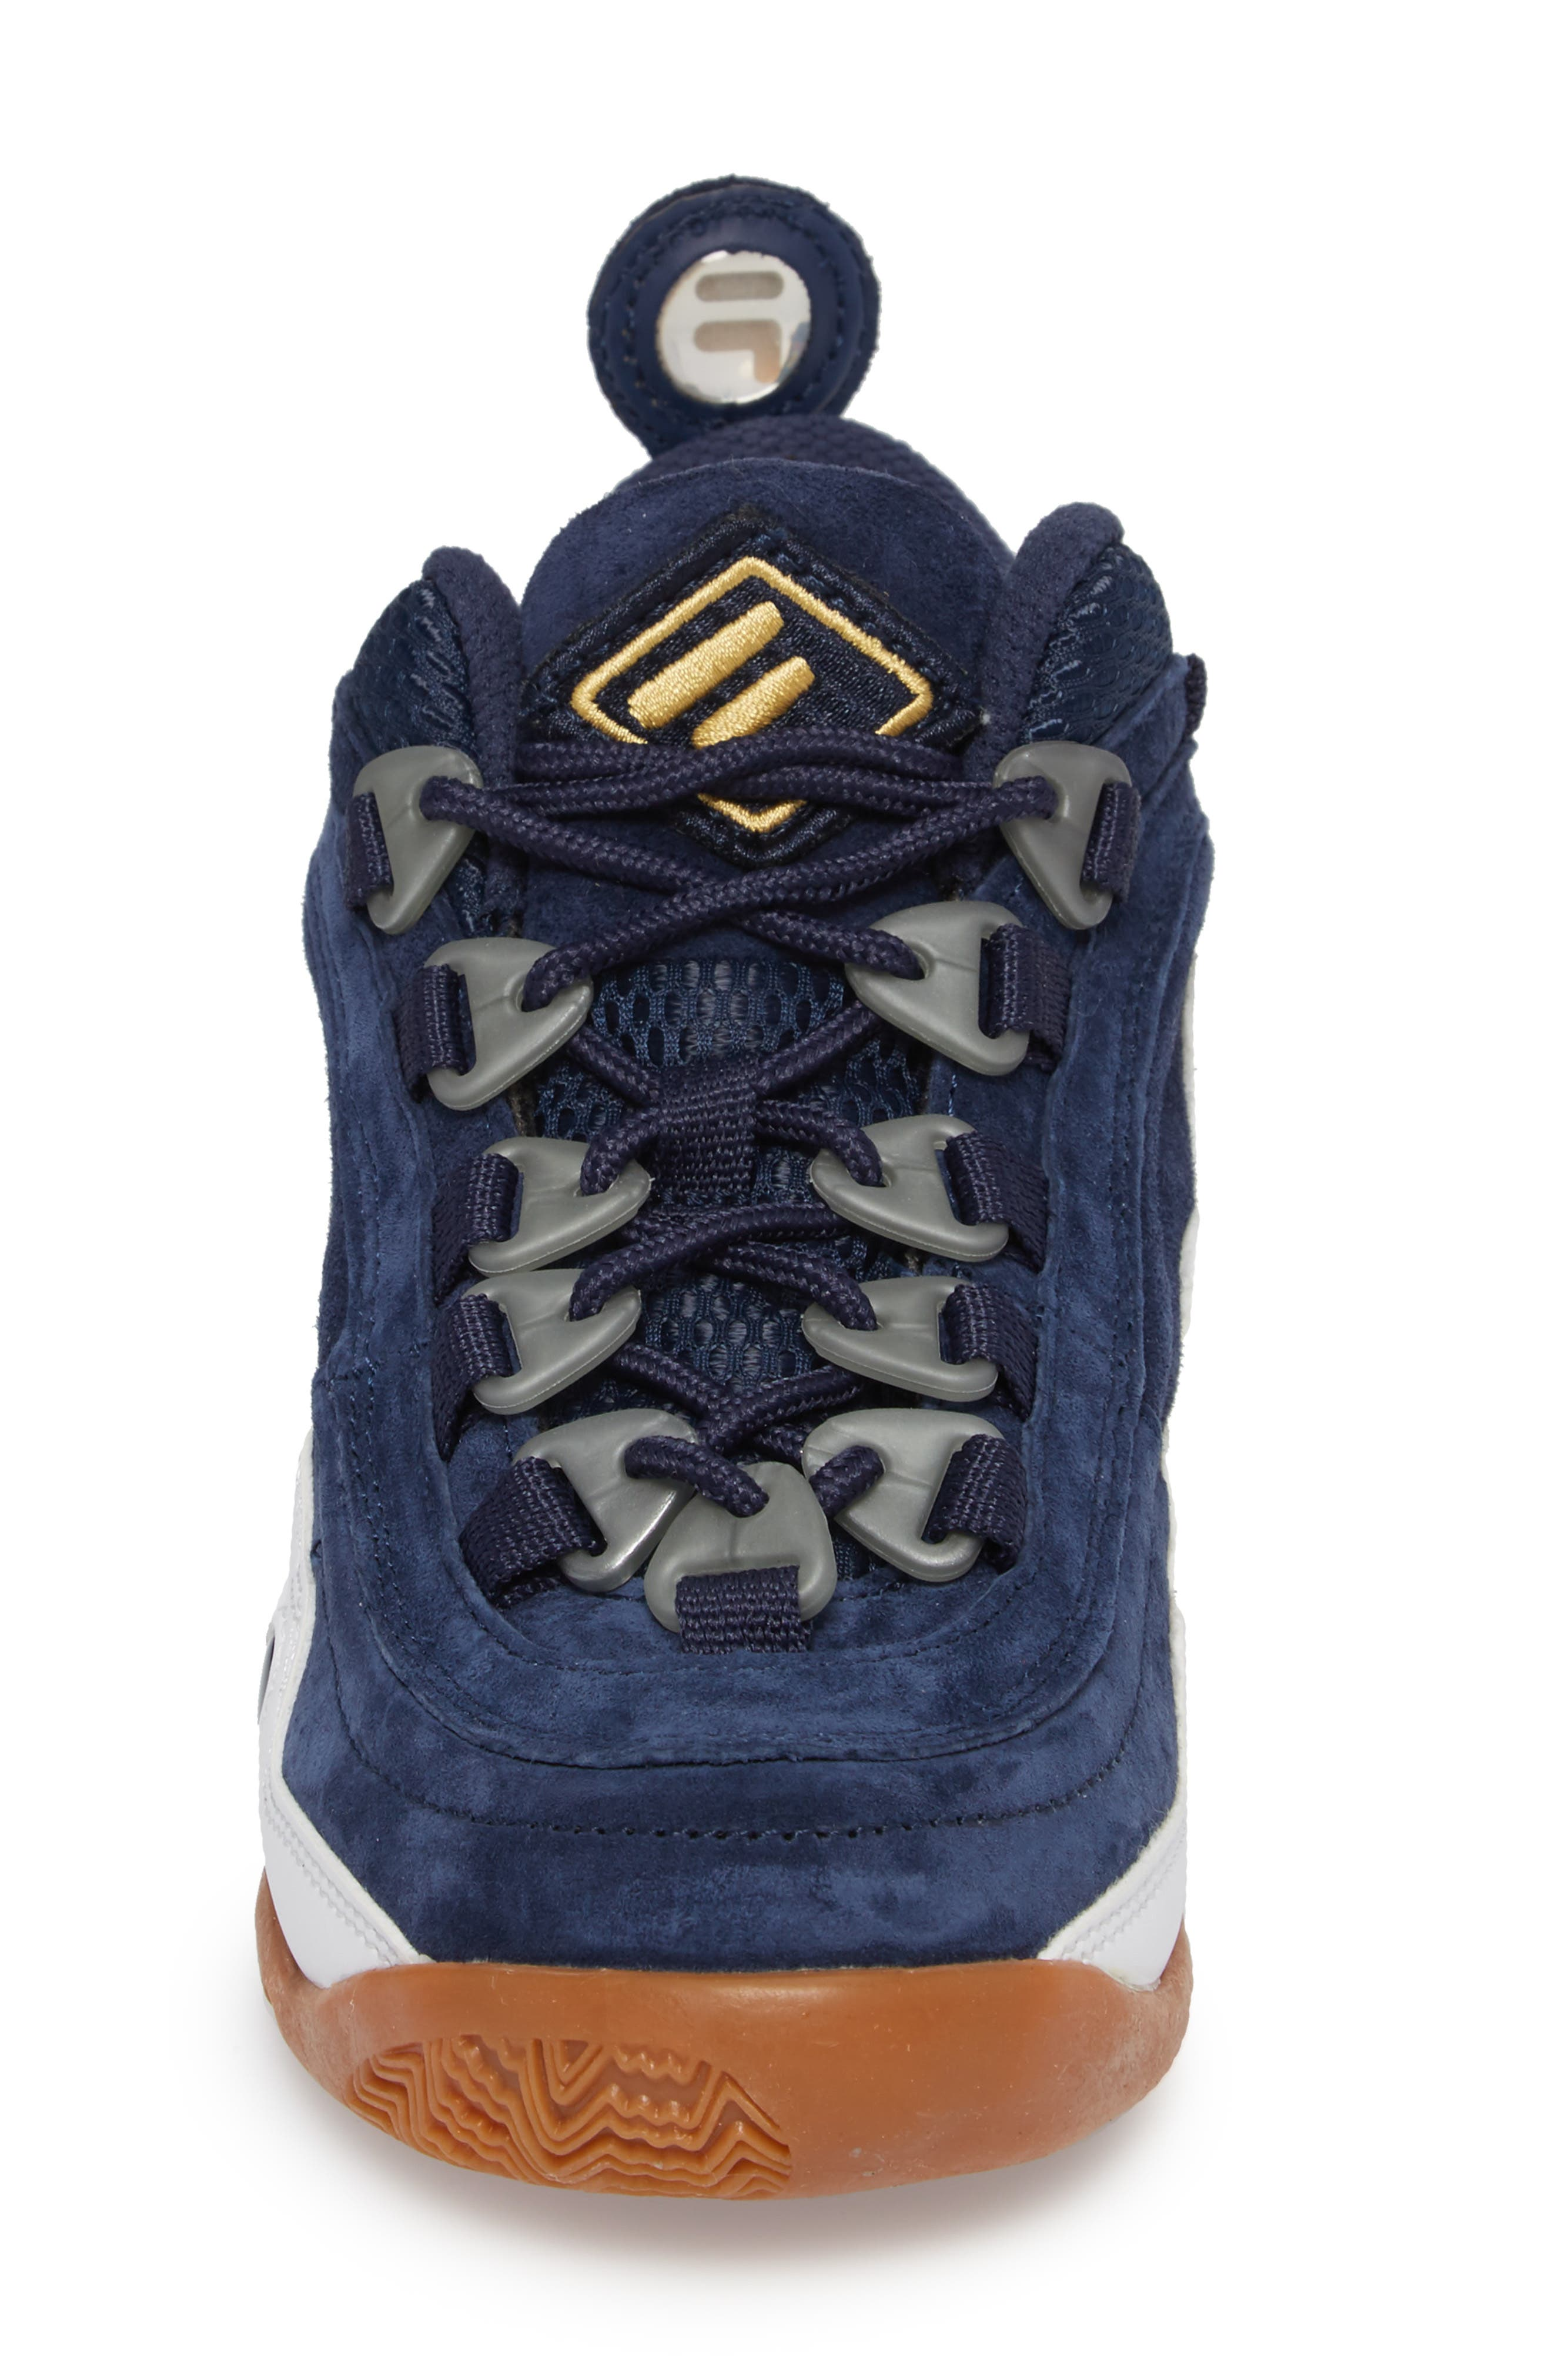 Bubbles Mid Top Sneaker Boot,                             Alternate thumbnail 4, color,                             NAVY/ GOLD/ WHITE